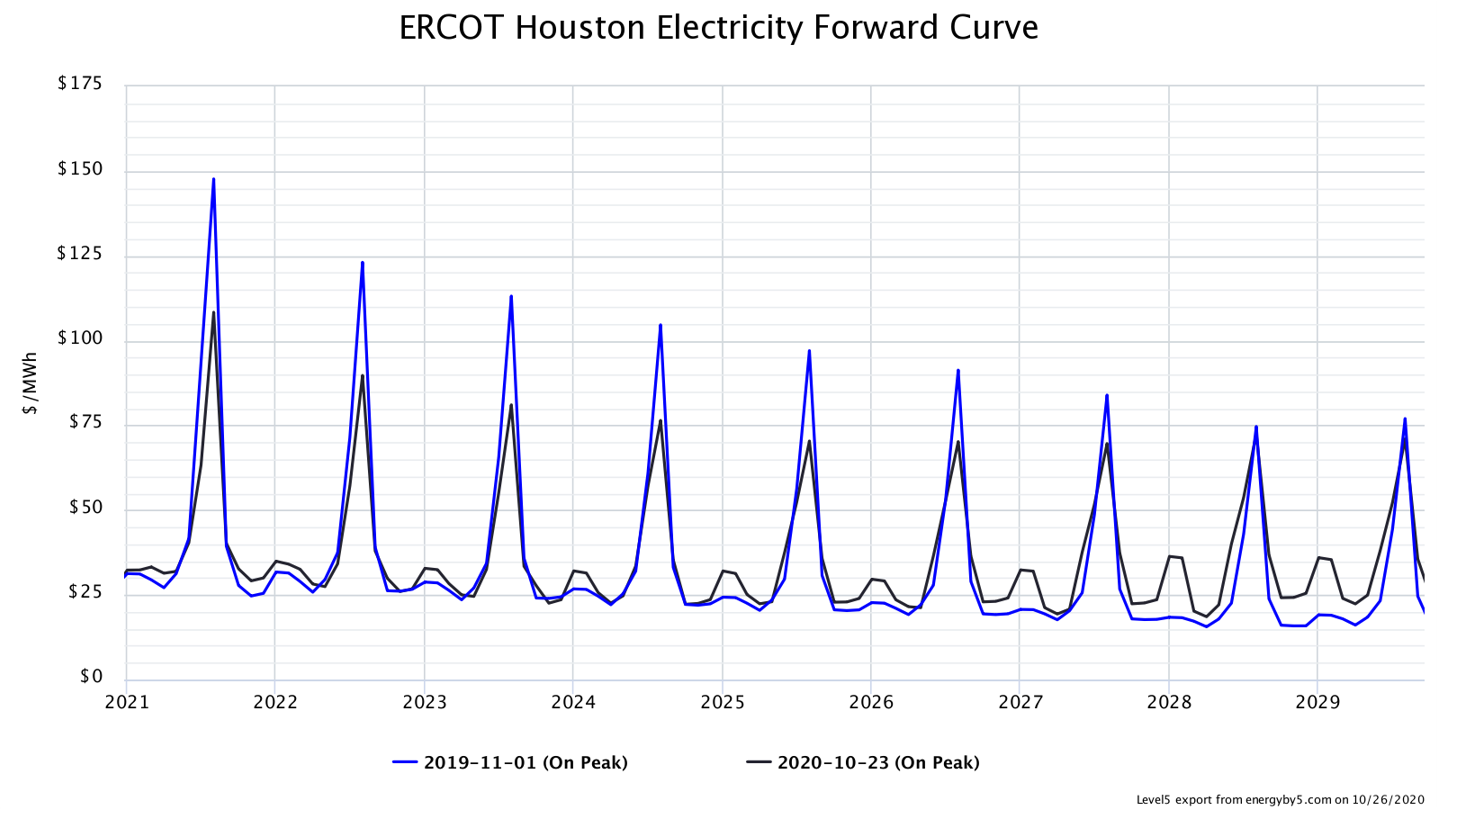 ERCOT Houston Electricity Forward Curve